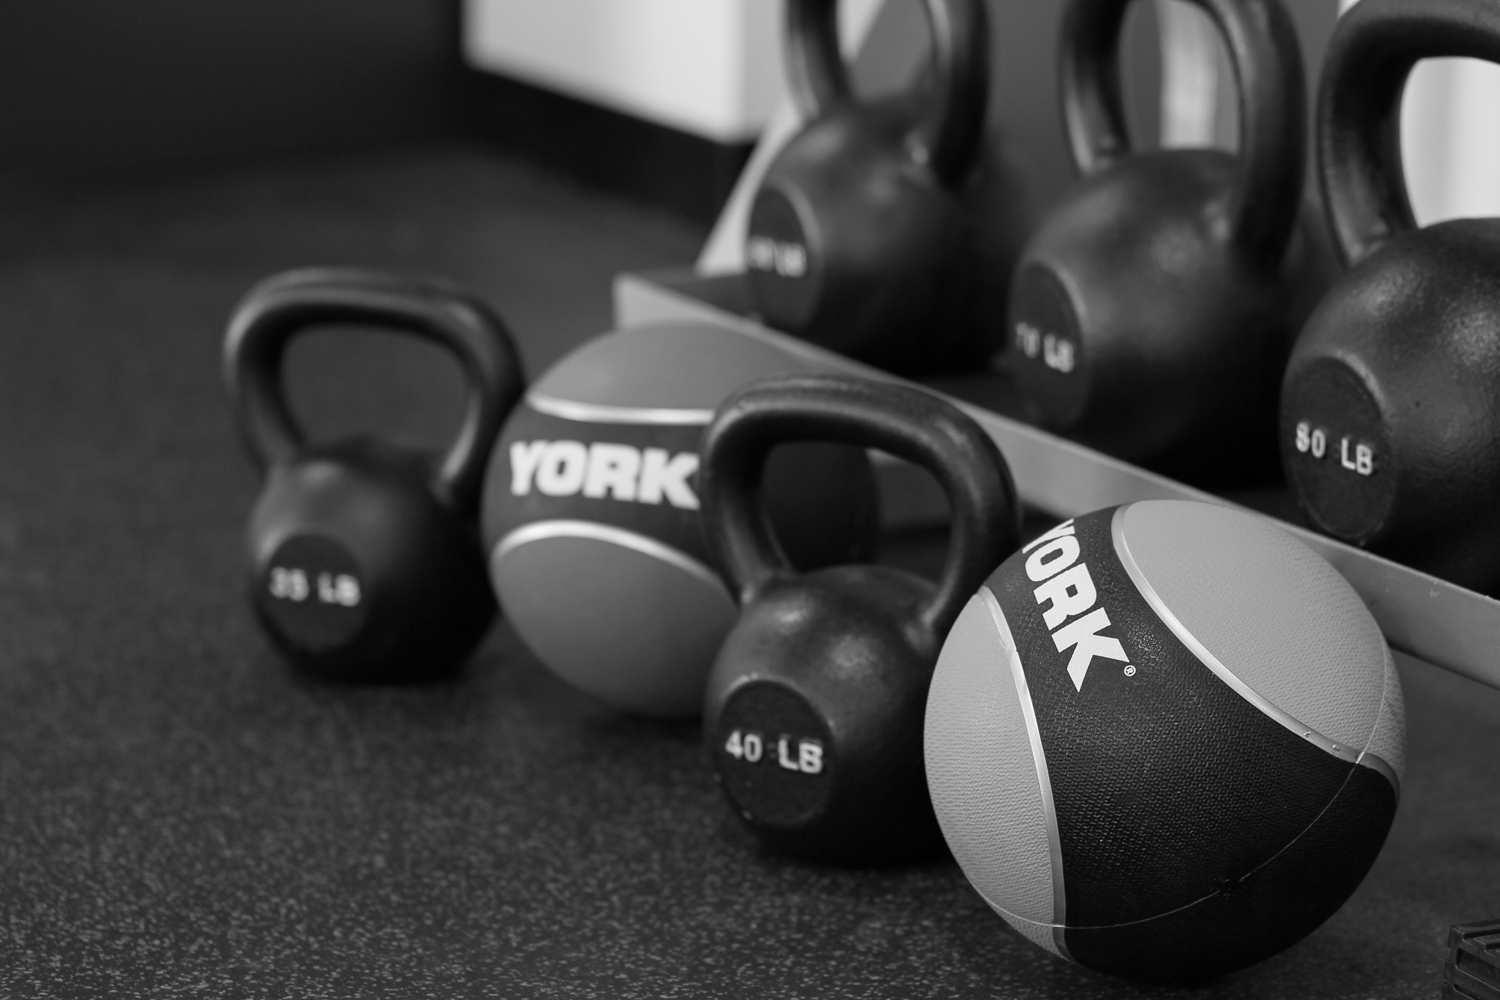 Gym Equipment Fitness Products